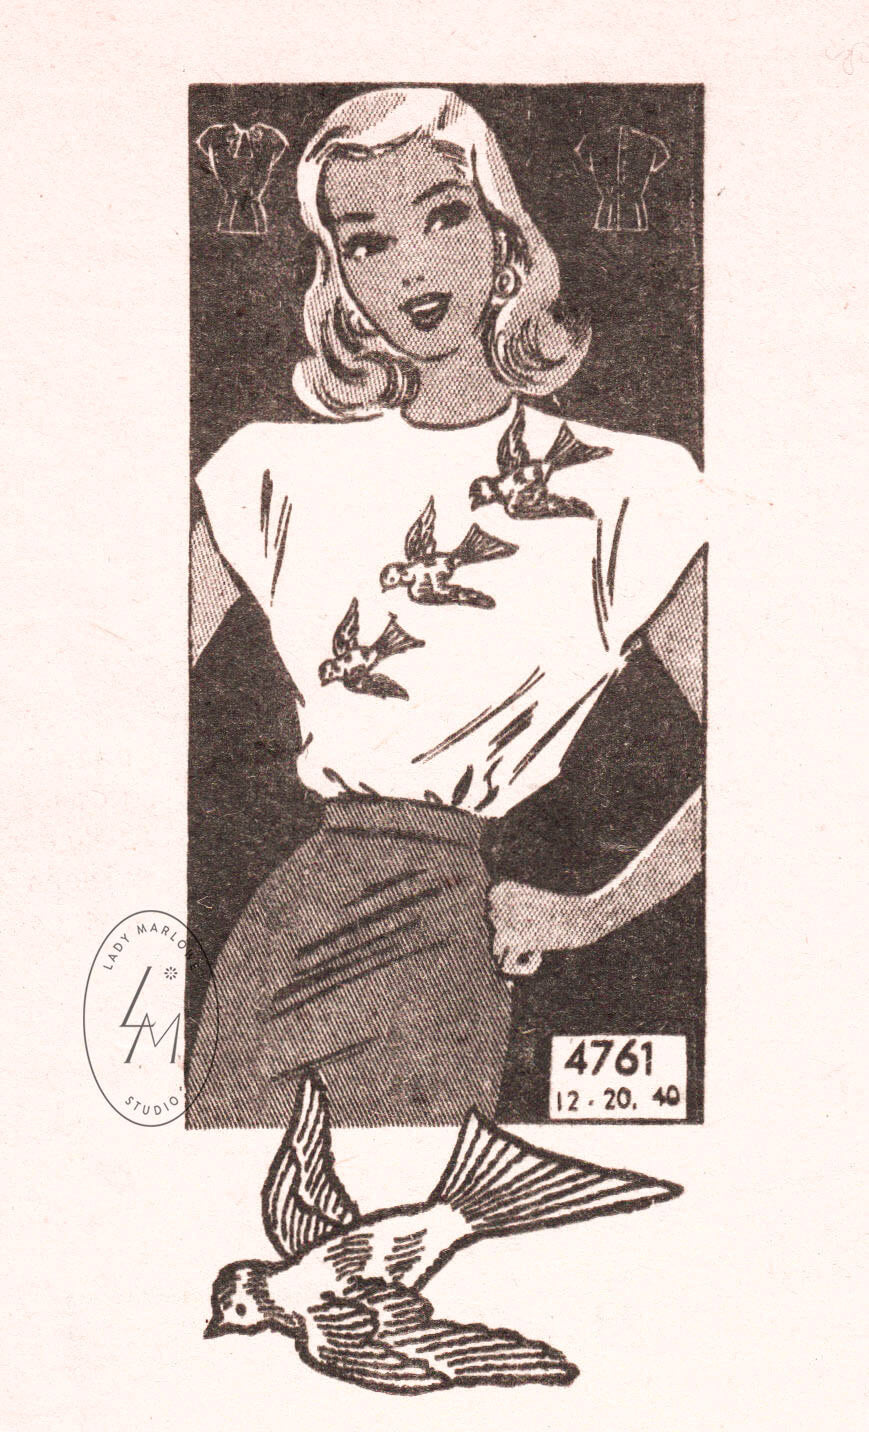 1940s blouse Anne Adams 4761 swallow bird embroidery vintage sewing pattern reproduction